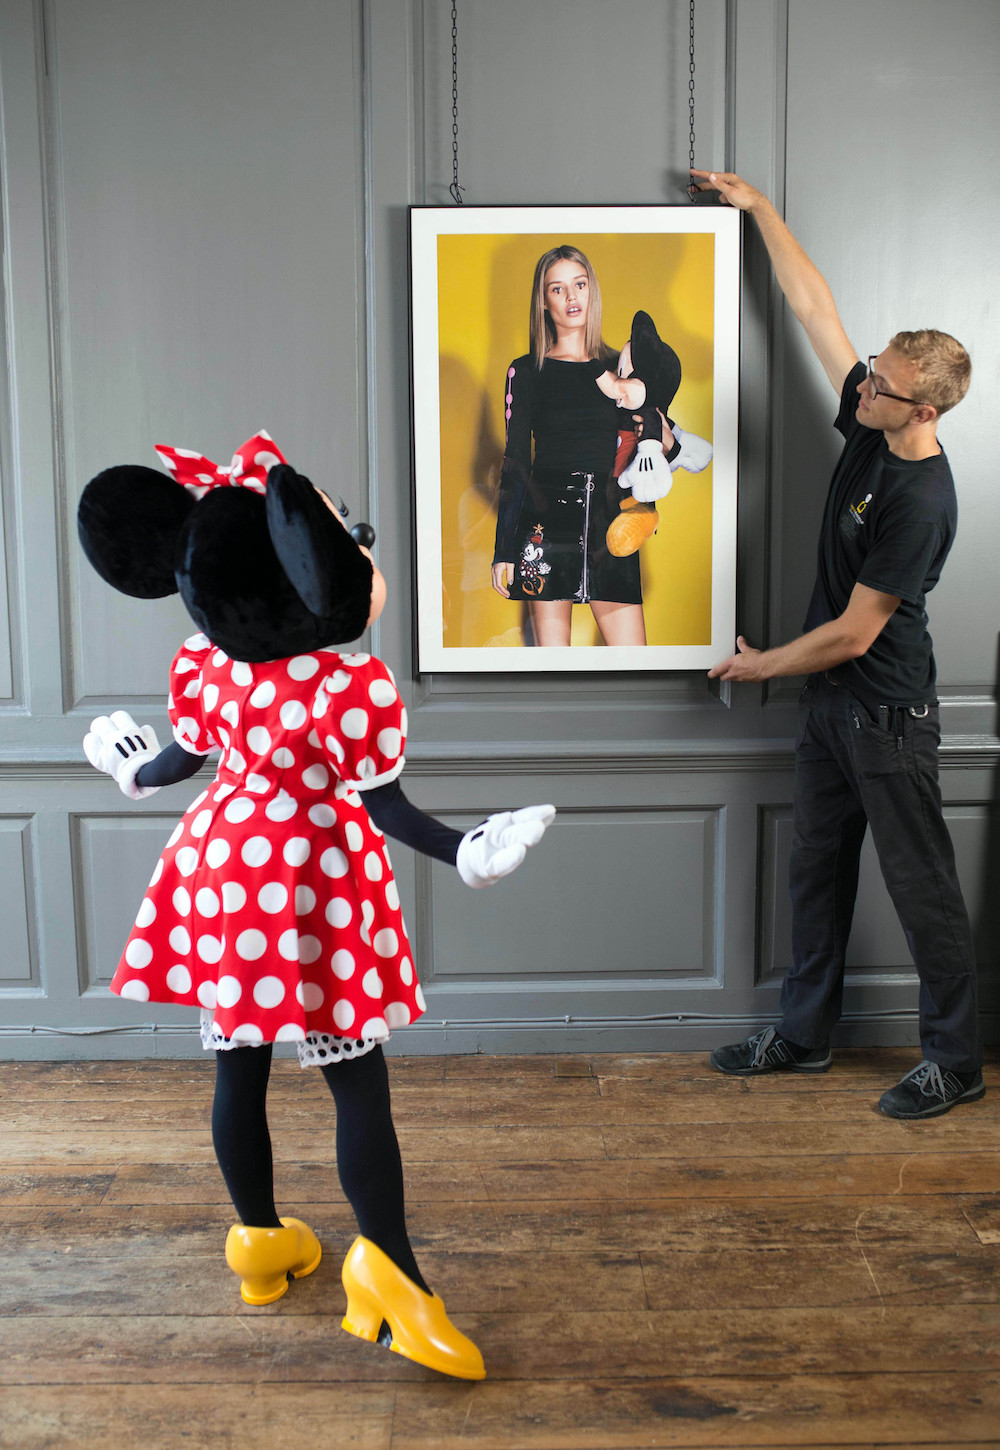 EDITORIAL USE ONLY Minnie Mouse watches as artwork is hung at Blacks Club in London, ahead of the opening of new exhibition, Minnie: Style Icon, in partnership with the British Fashion Council, which will be on display at the Soho venue during London Fashion Week. PRESS ASSOCIATION Photo. Picture date: Thursday September 17, 2015. The exhibition of exclusive photographs, exploring the character of Disney's Minnie Mouse and her influence on fashion and pop culture, has been curated with the help of model and photographer, Georgia May Jagger. Photo credit should read: David Parry/PA Wire